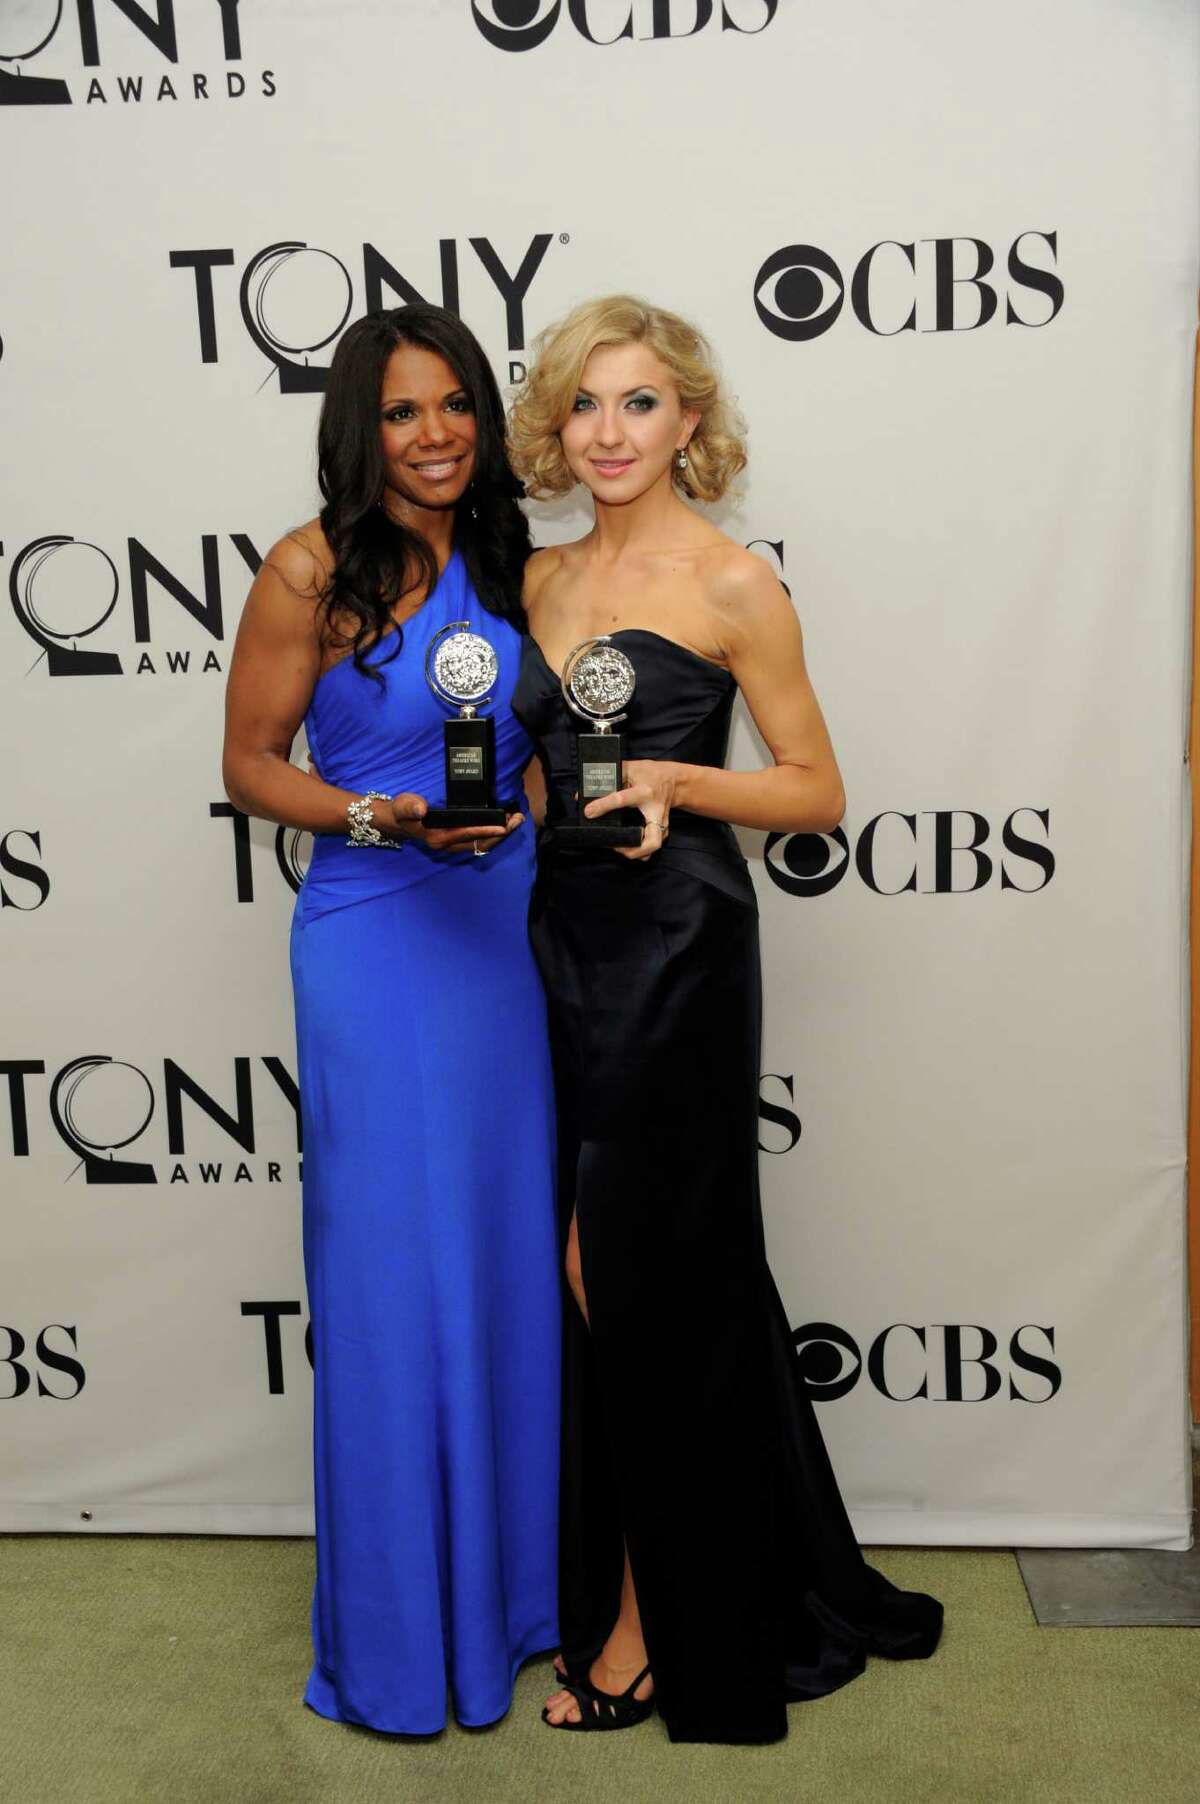 Audra McDonald, left, and Nina Arianda pose with their awards at the 66th annual Tony Awards on Sunday June 10, 2012, in New York. (Photo by Evan Agostini /Invision/AP)